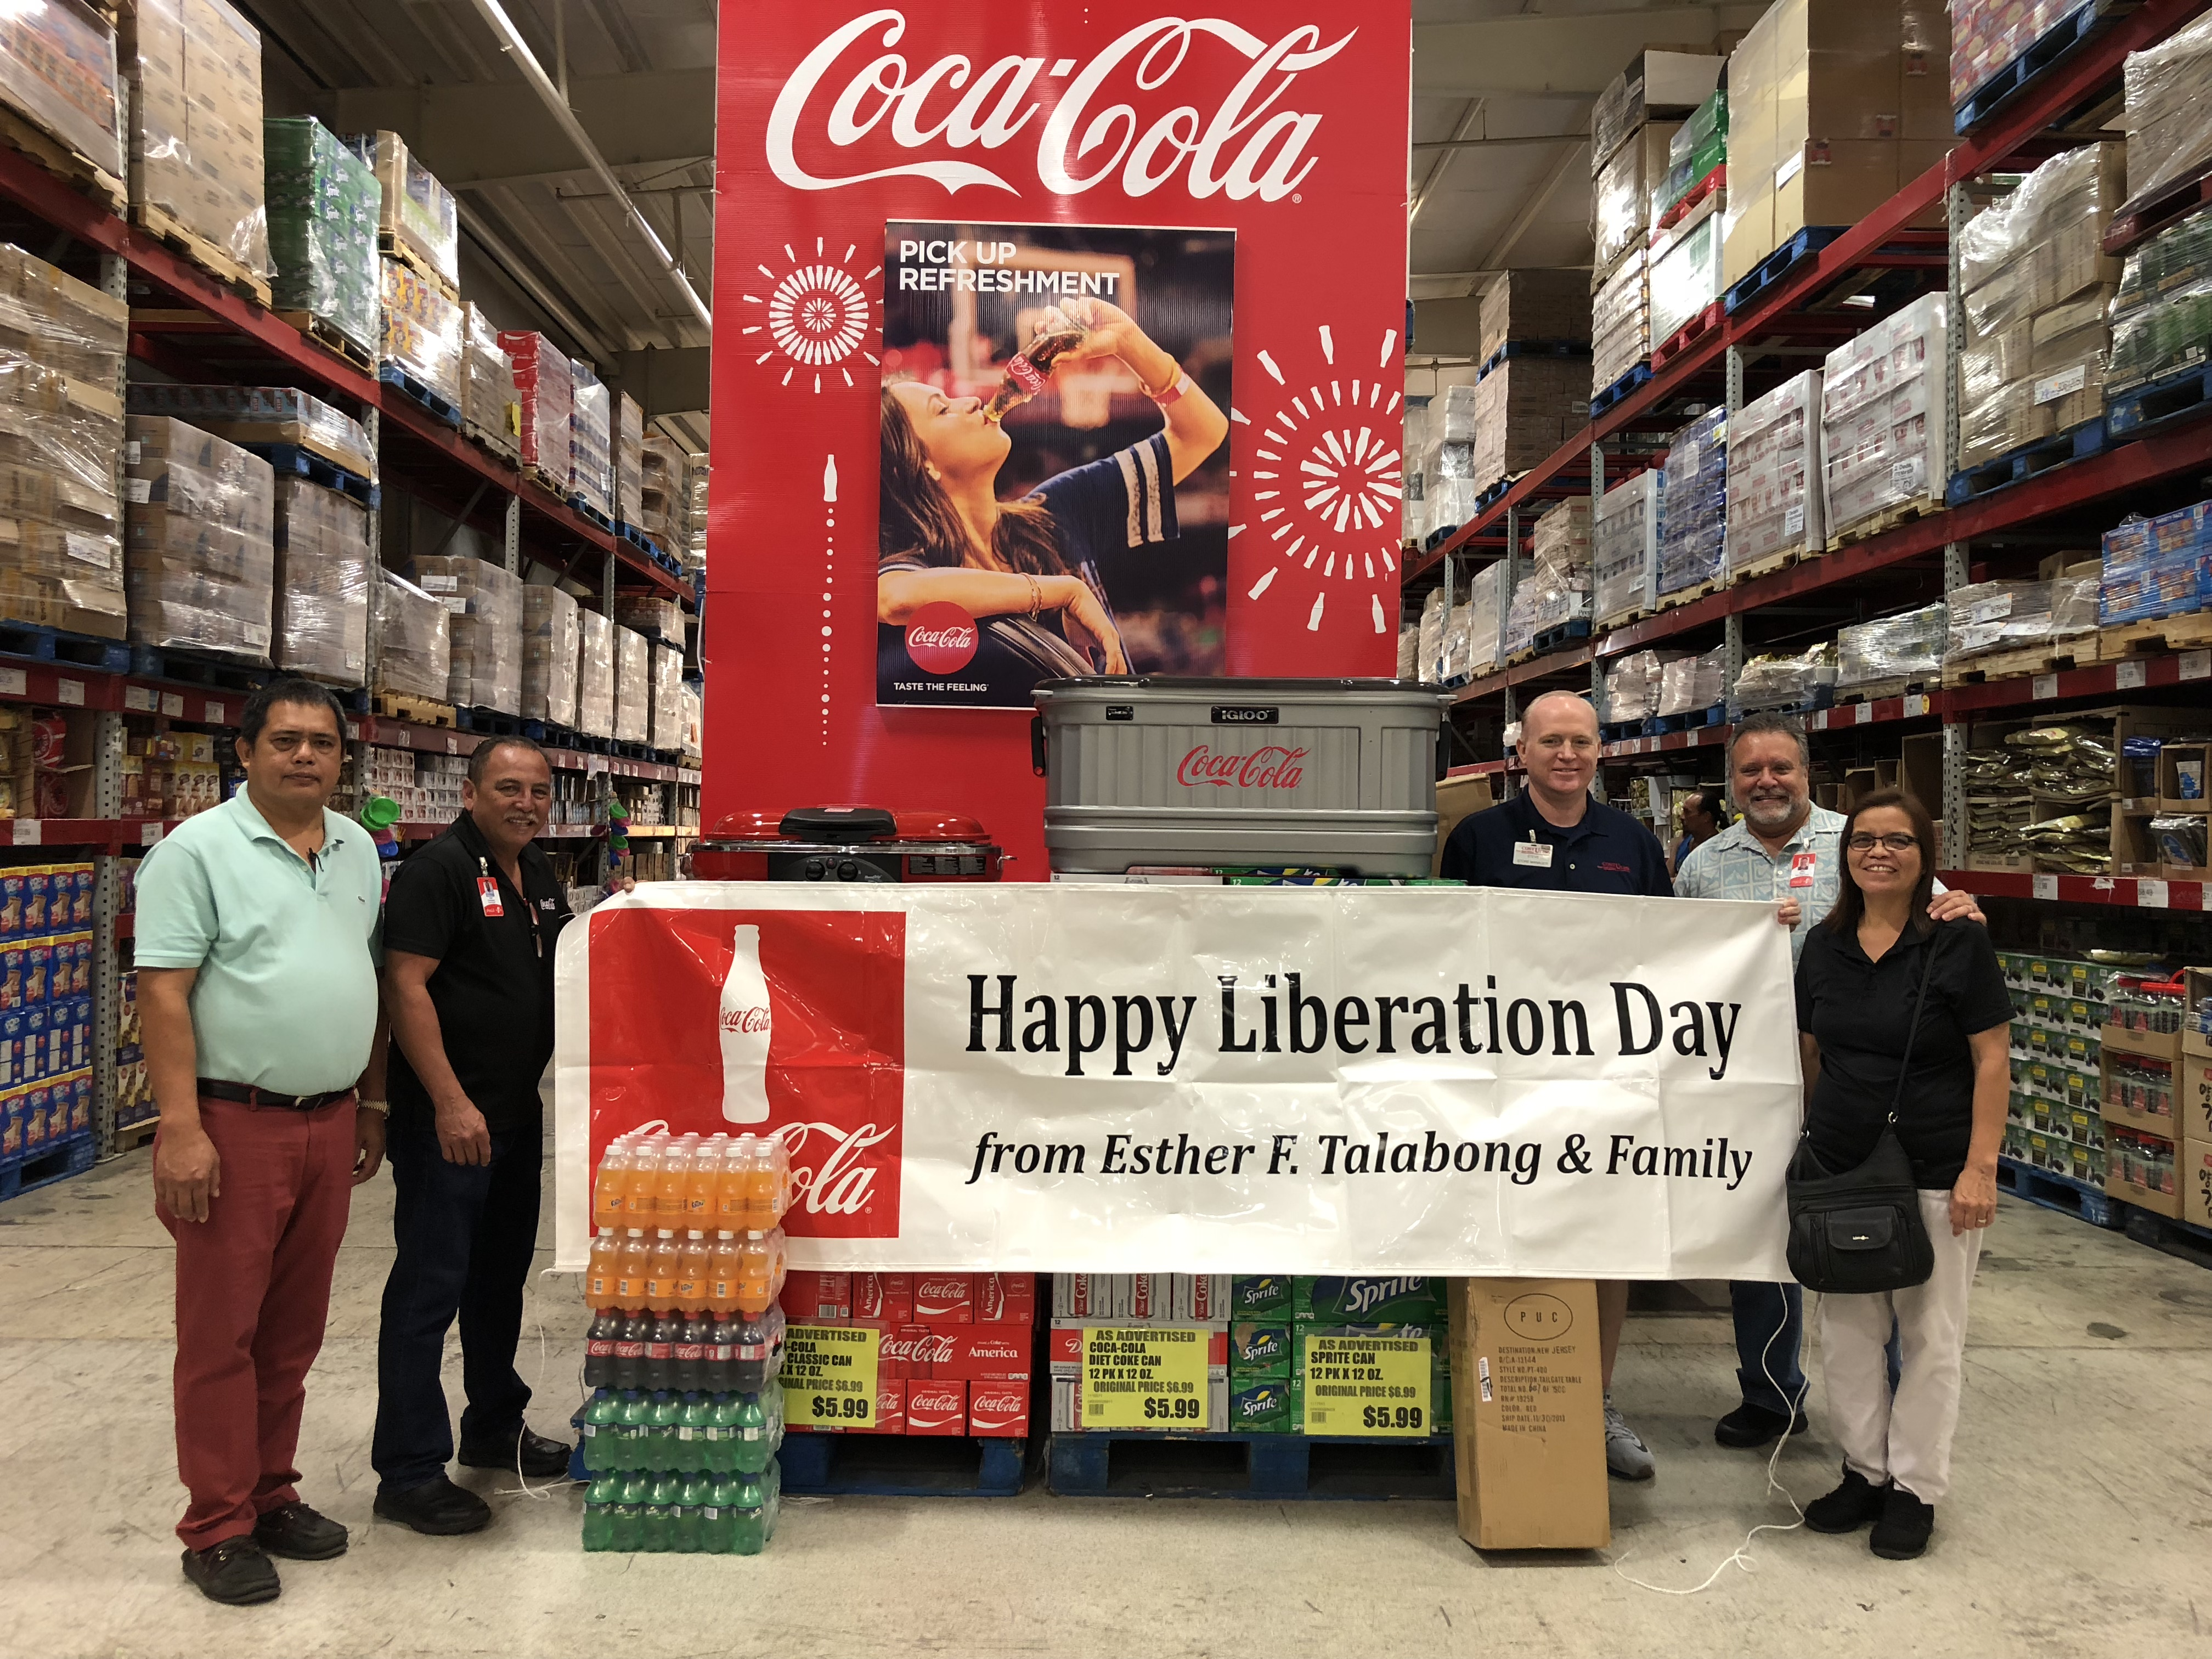 Coca-Cola gives away Liberation Party package<br>to three winners